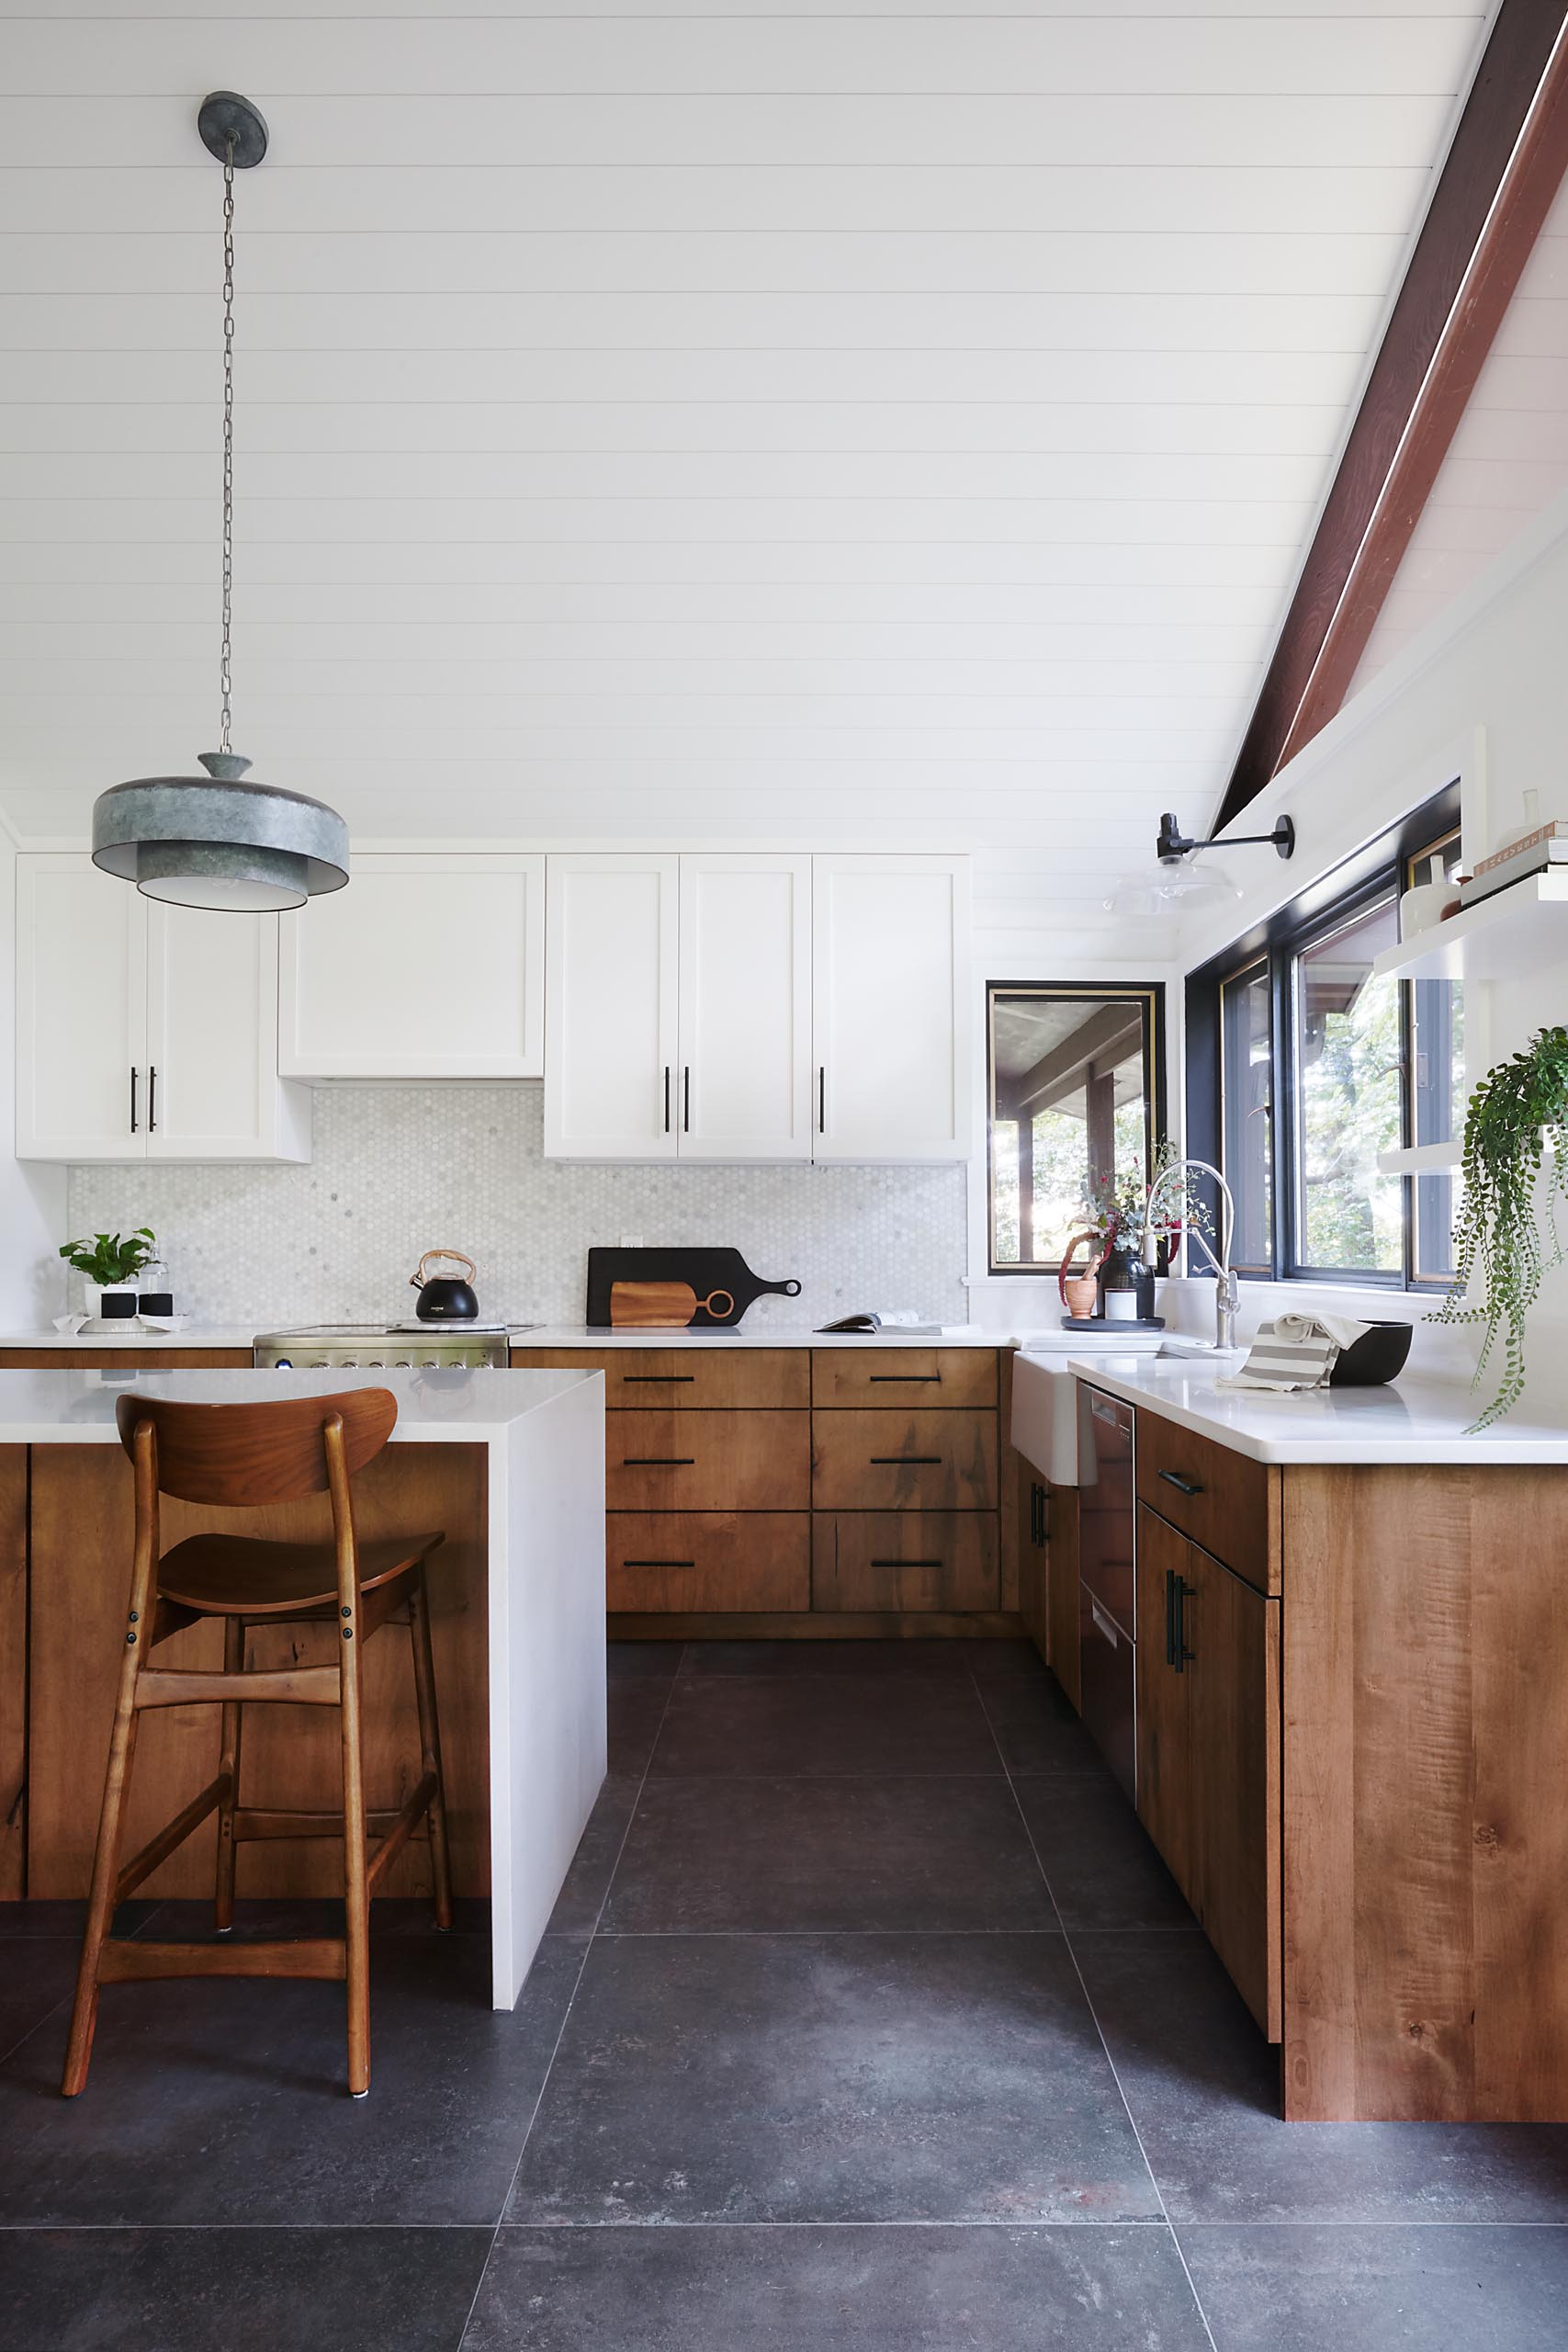 A modern kitchen with white countertops, wood and white cabinets, black hardware, and an apron sink.